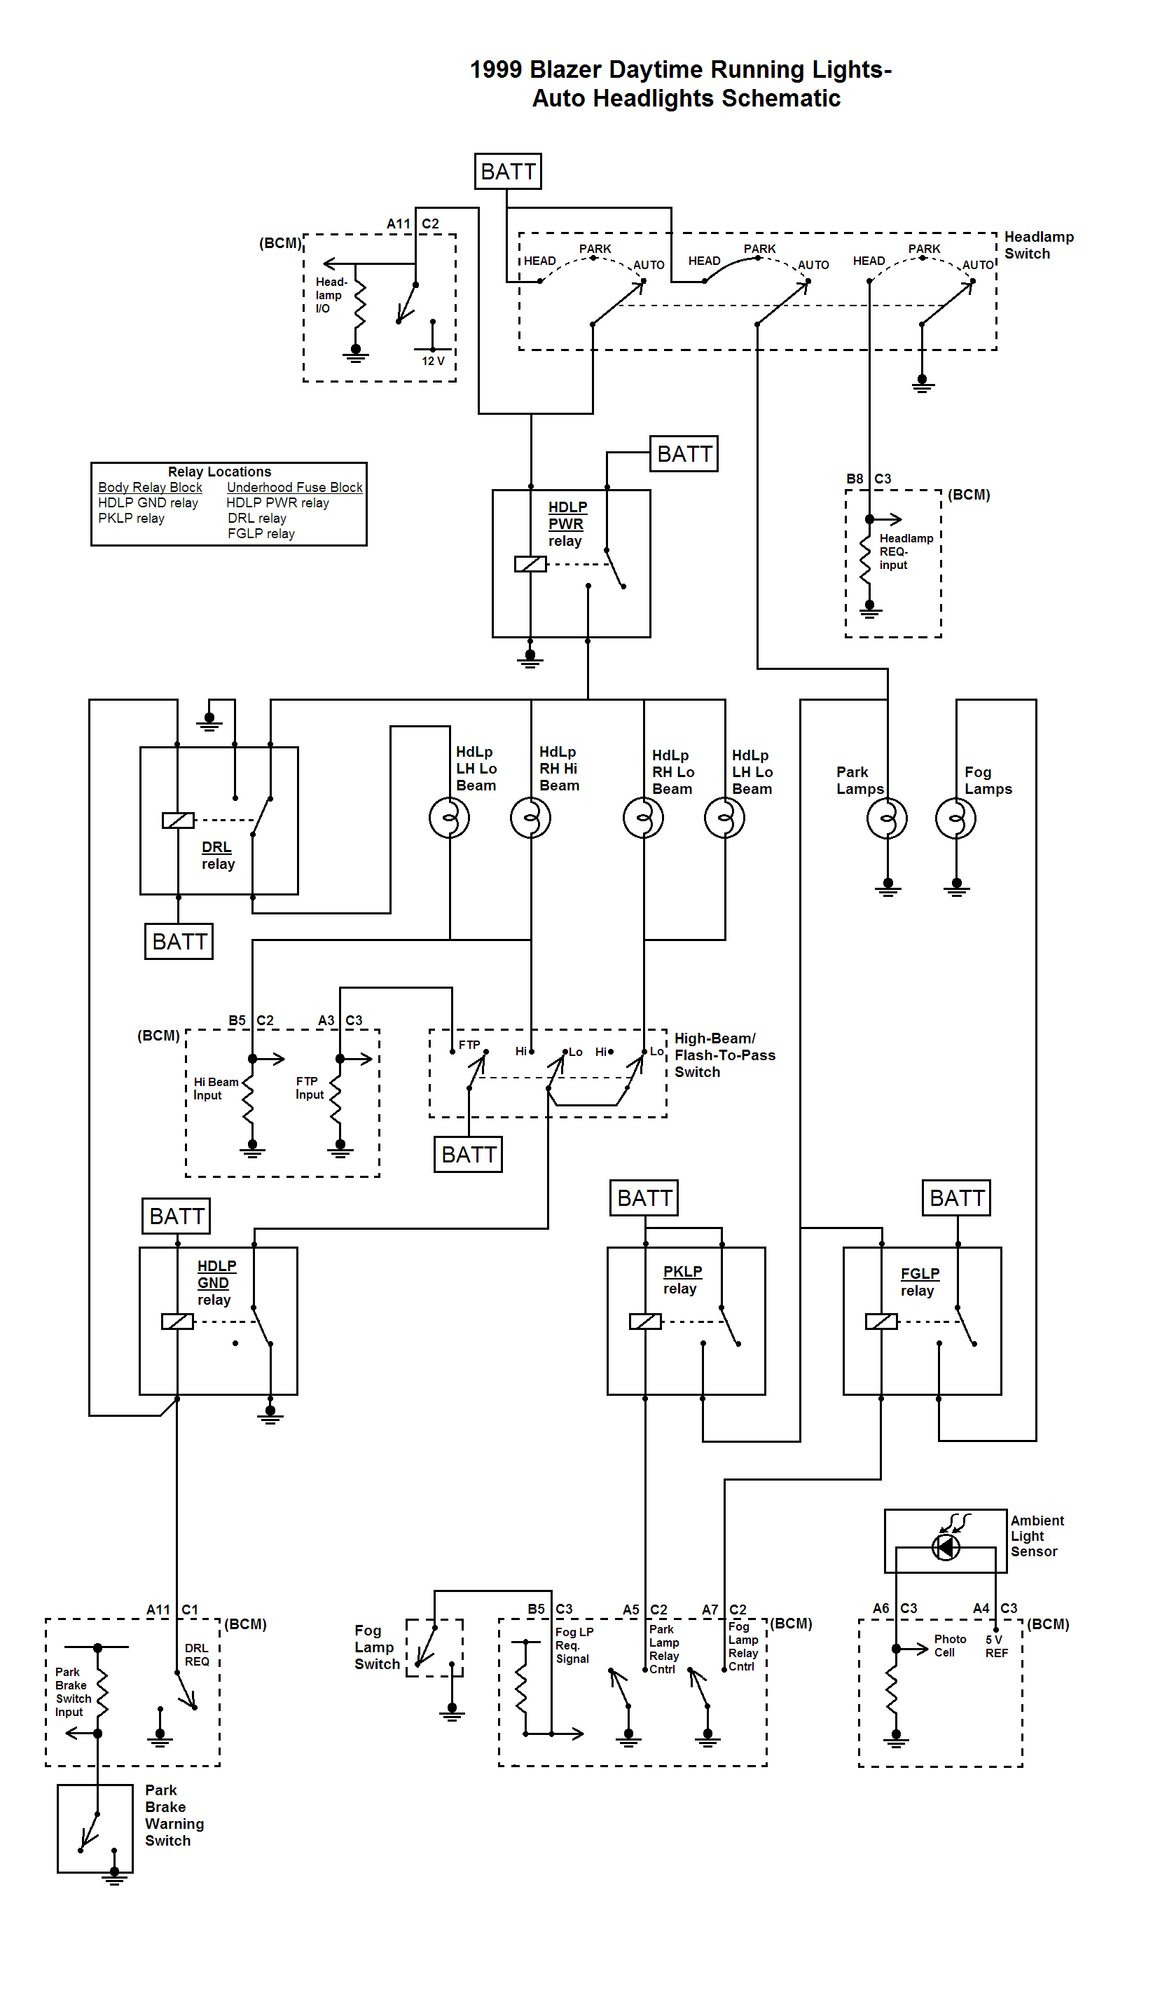 Wiring Diagram For 2003 Chevy Blazer Wiring Diagram Tan Completed A Tan Completed A Graniantichiumbri It